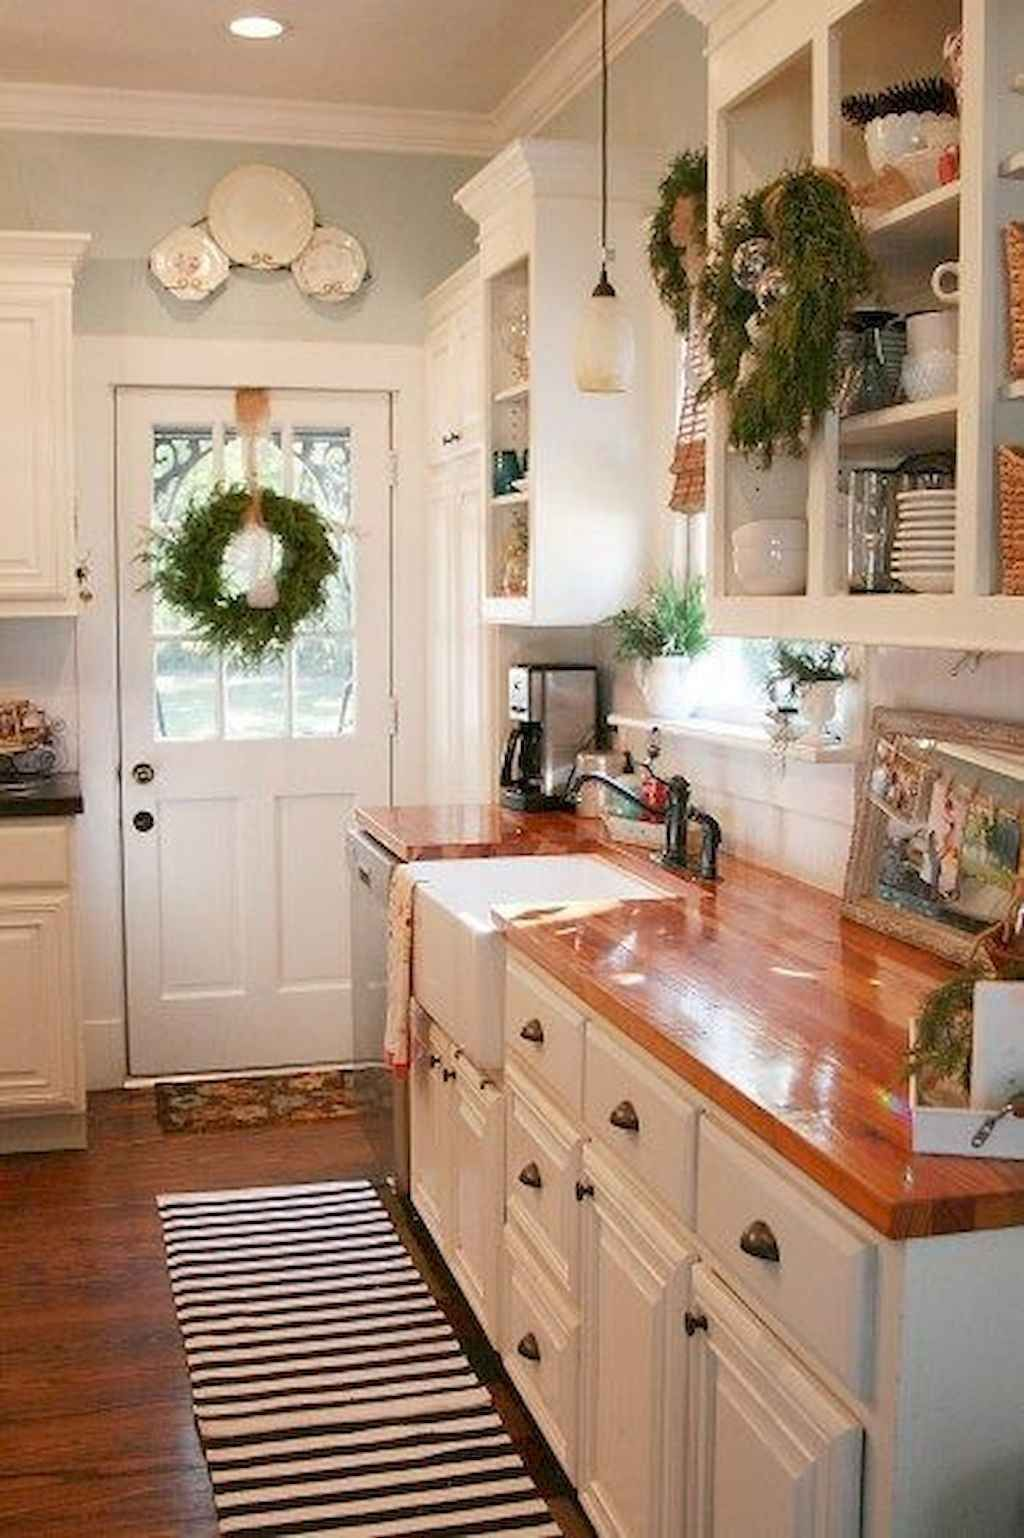 37 affordable farmhouse kitchen ideas on a budget nancey news kitchen in 2019 cottage on farmhouse kitchen on a budget id=83791